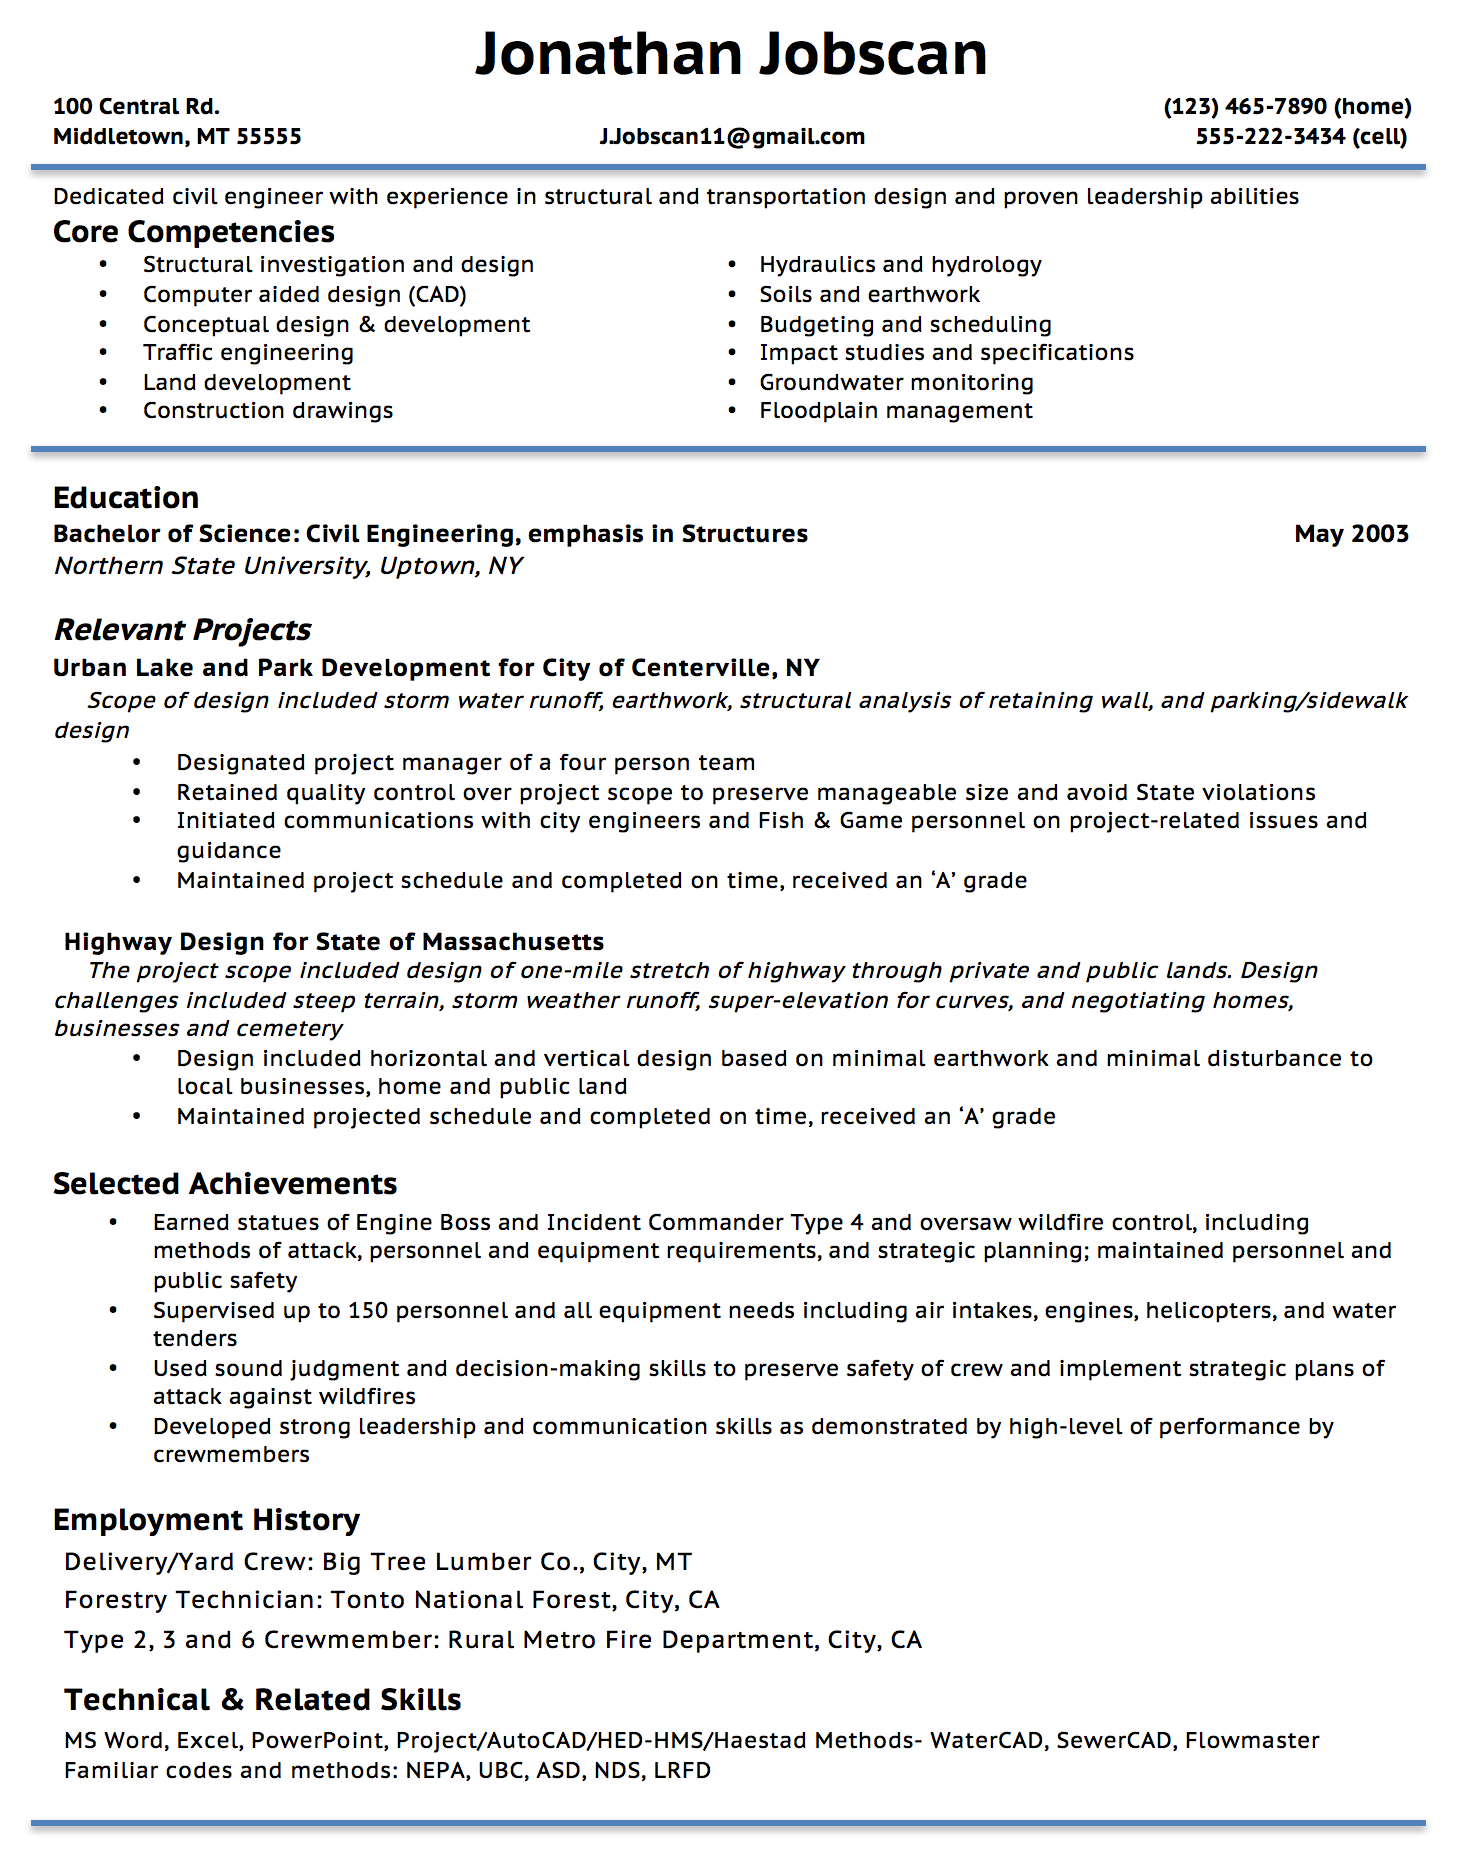 Picnictoimpeachus  Pretty Resume Writing Guide  Jobscan With Heavenly Example Of A Functional Resume Format With Archaic Resume Dos And Donts Also Resume Retail In Addition It Skills Resume And Restaurant Resumes As Well As How To Do A Resume On Microsoft Word Additionally What Does A Resume Include From Jobscanco With Picnictoimpeachus  Heavenly Resume Writing Guide  Jobscan With Archaic Example Of A Functional Resume Format And Pretty Resume Dos And Donts Also Resume Retail In Addition It Skills Resume From Jobscanco